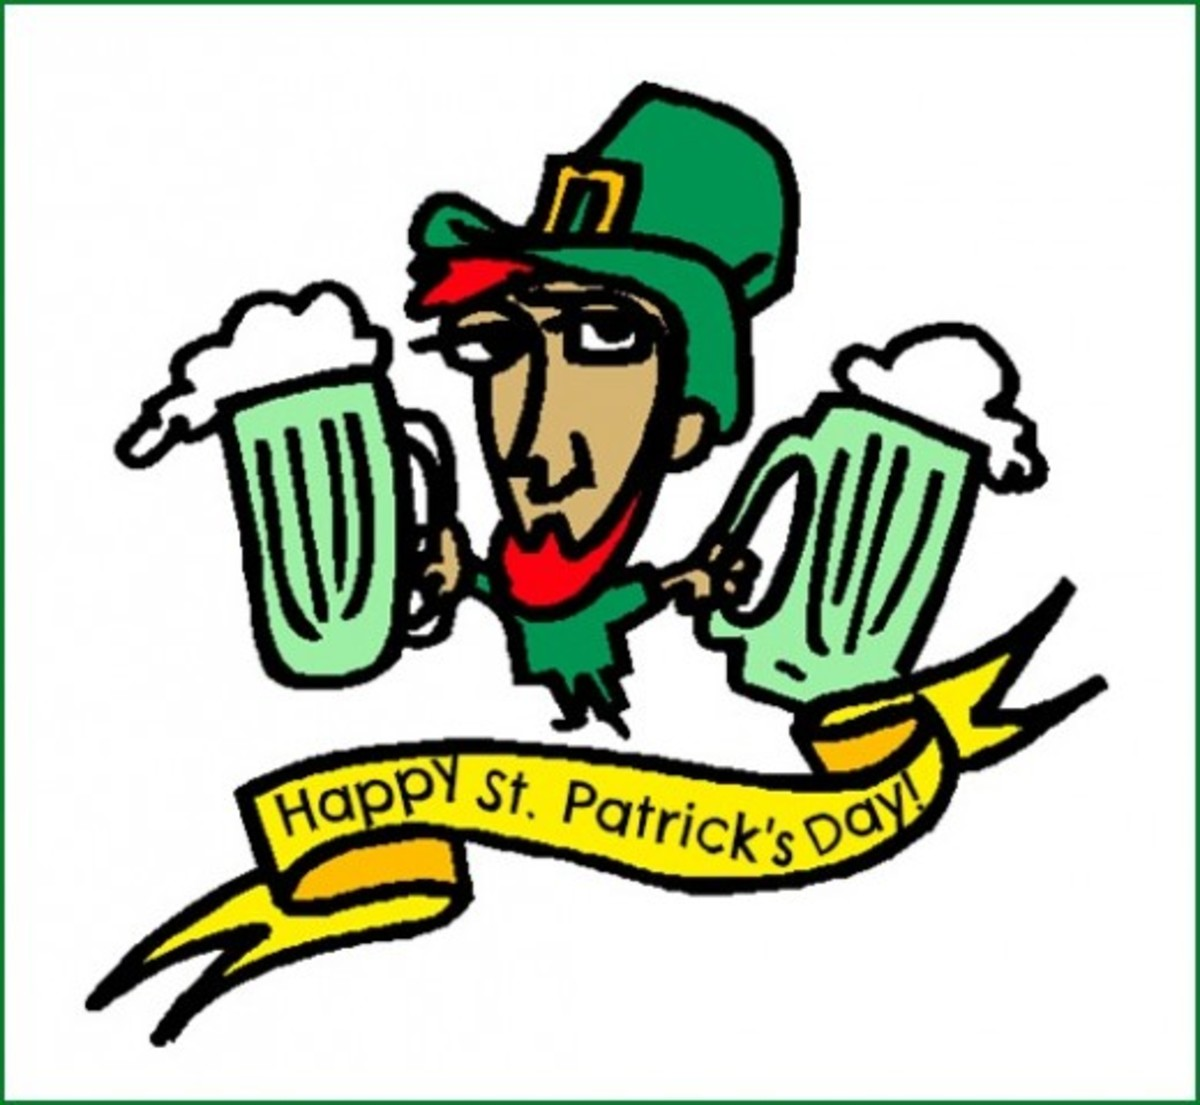 'Happy St. Patrick's Day' with Leprechaun Holding Two Beers